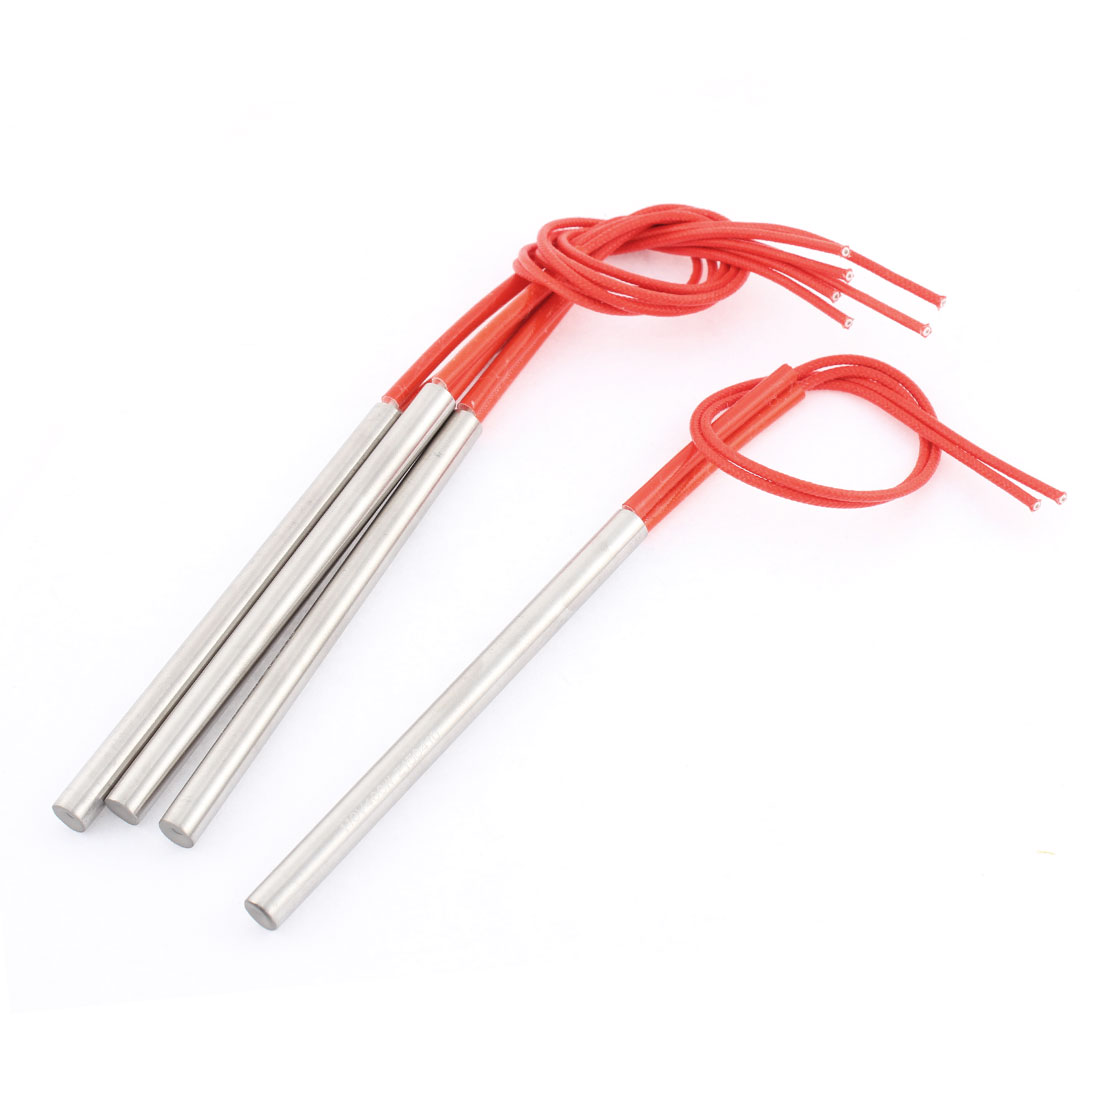 4 Pcs AC110V 100W-400W Mold Heating Element Cartridge Heater Tube 8 x 110mm